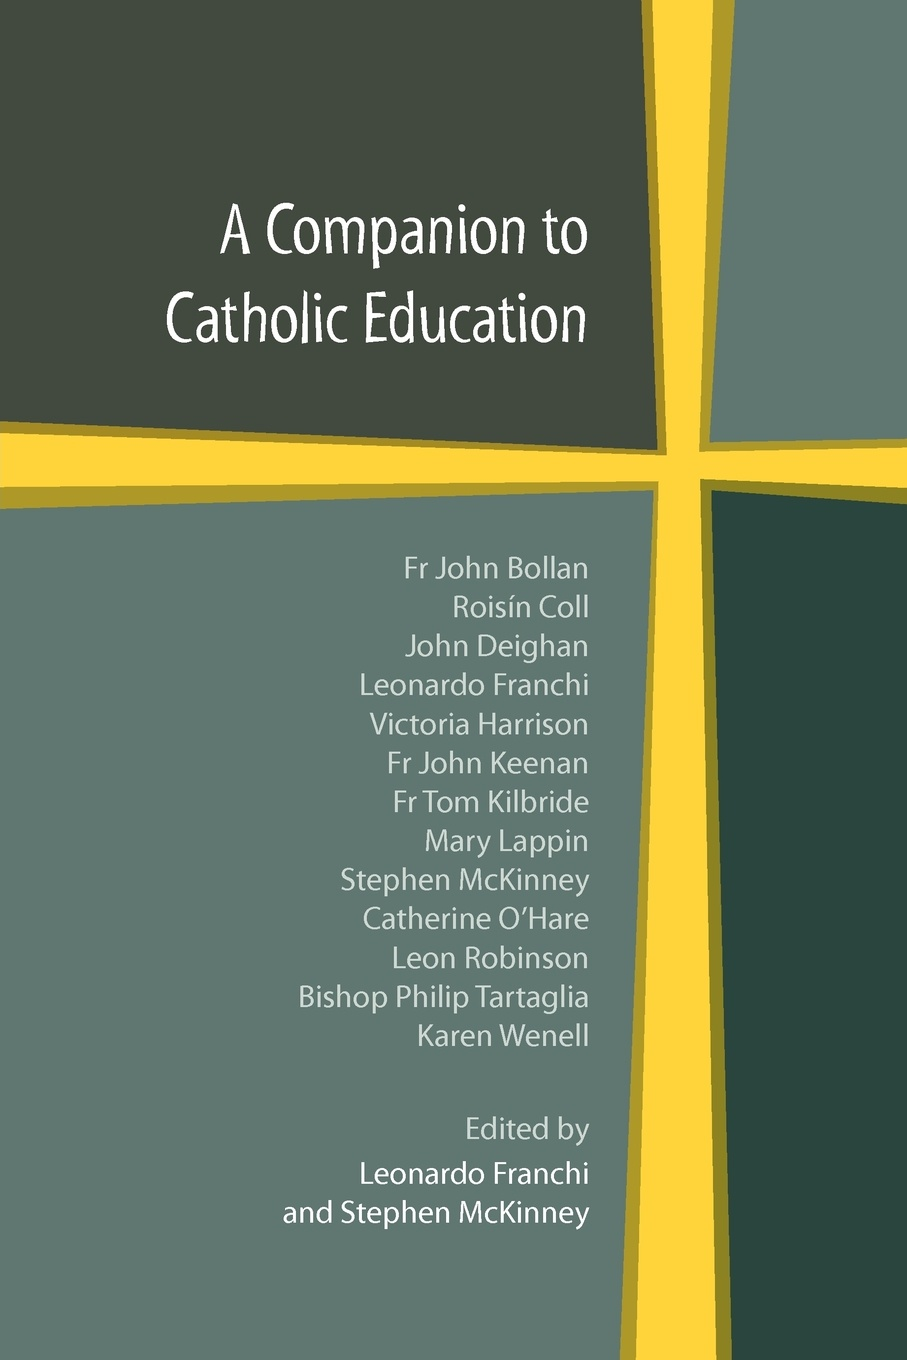 A Companion to Catholic Education gerard o shea educating in christ a practical handbook for developing the catholic faith from childhood to adolescence for parents teachers catechists and school administrators